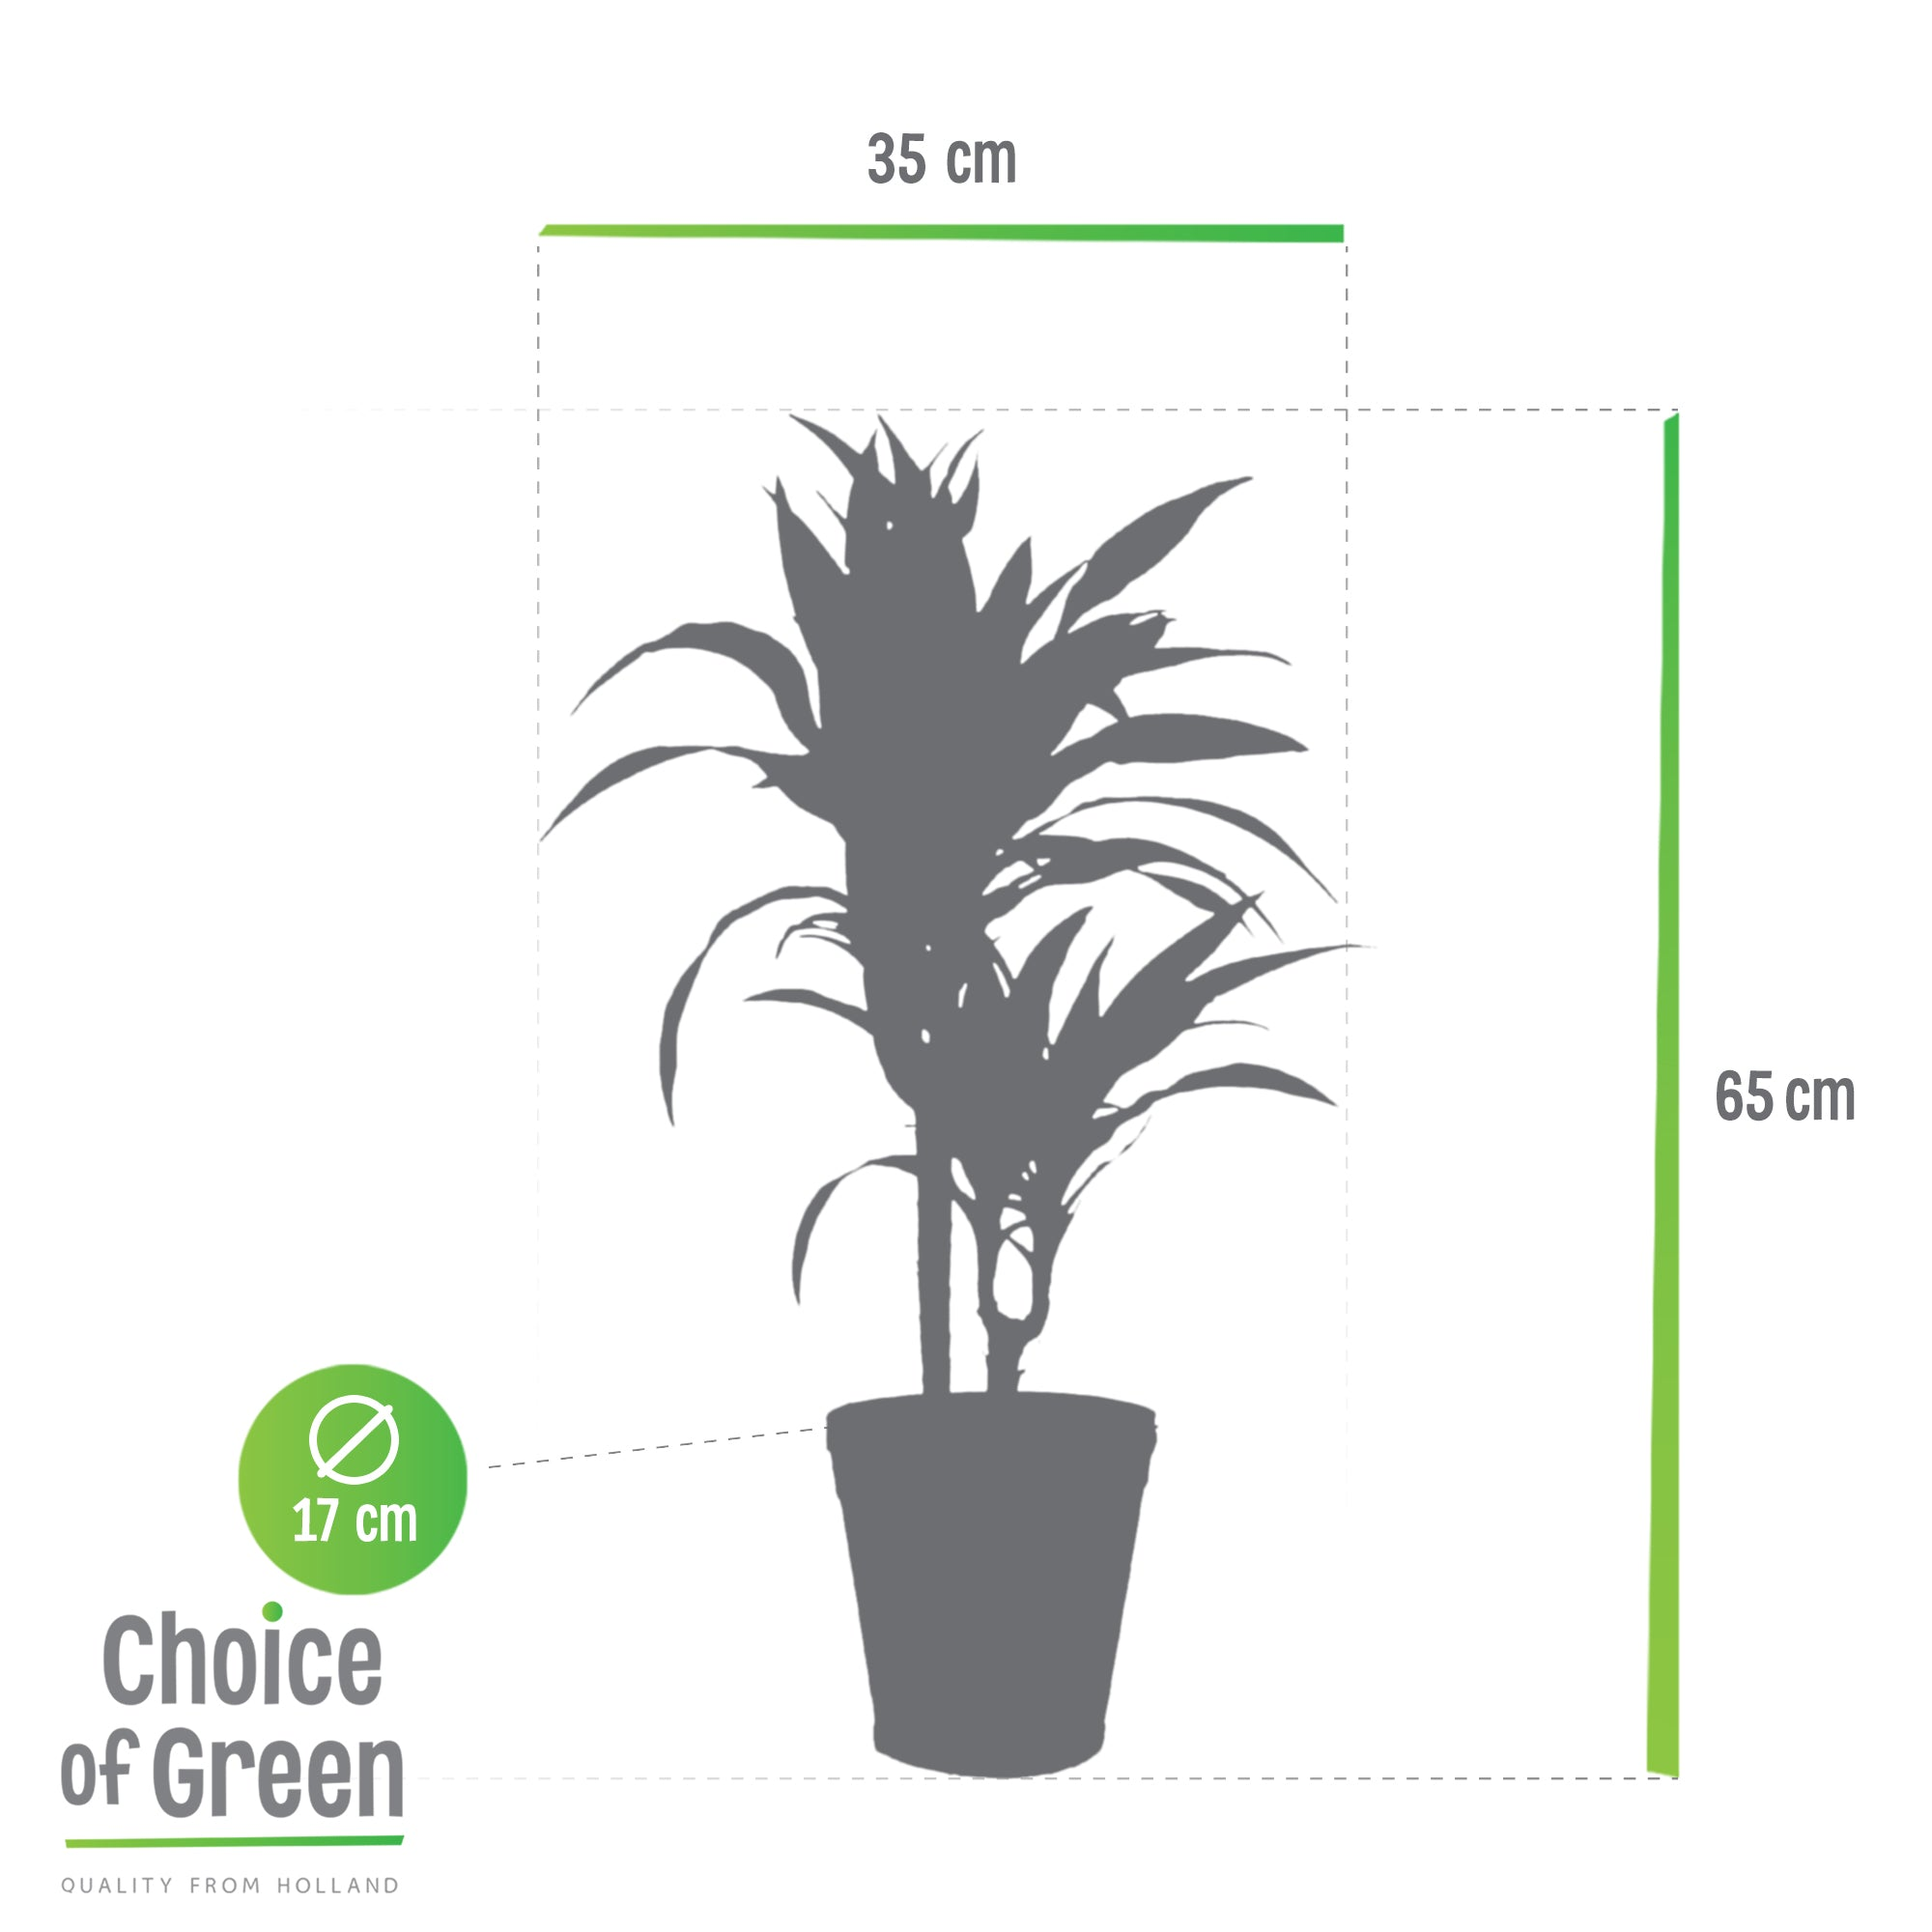 Choice of Green - Dracaena 'Lemon Lime' in witte Chipwood-pot - Hoogte 65 cm - Diameter pot 17 cm